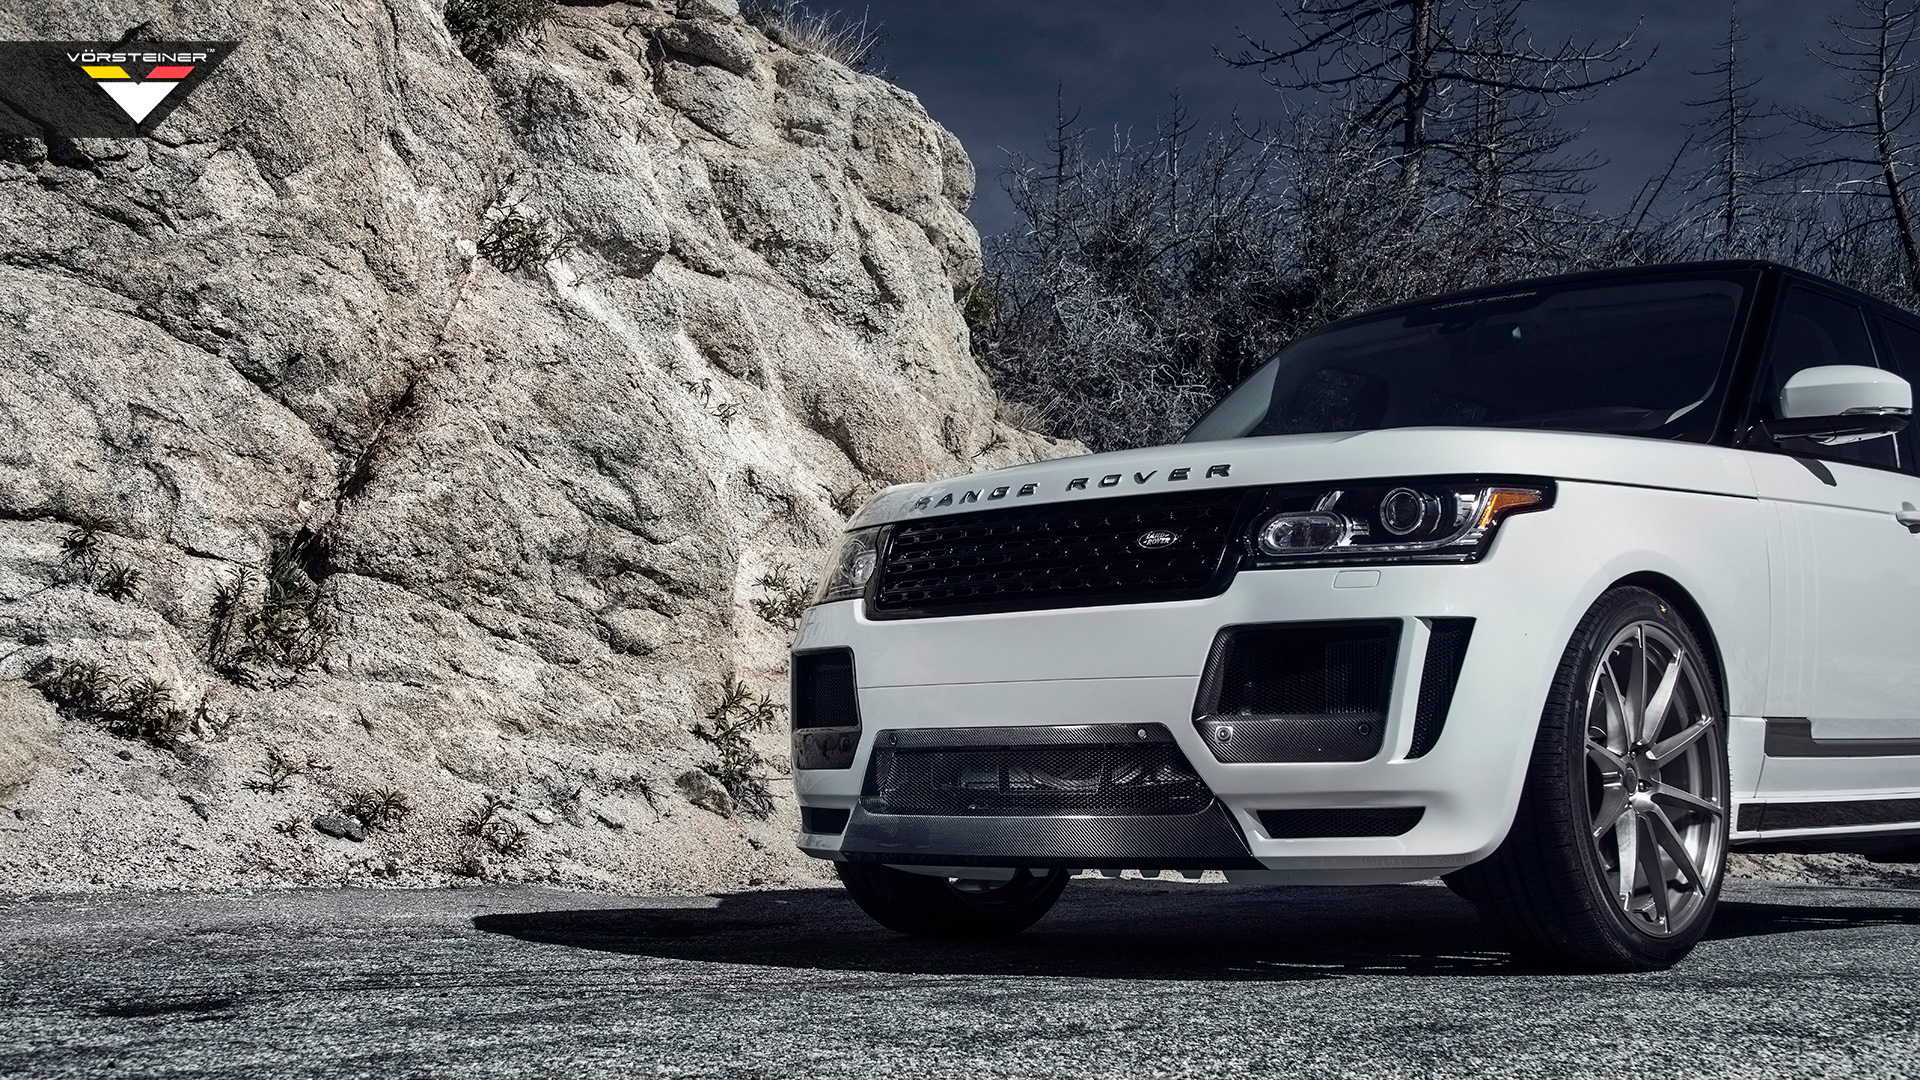 White range rover 1080p hd wallpaper car my likes pinterest white range rovers range rovers and cars